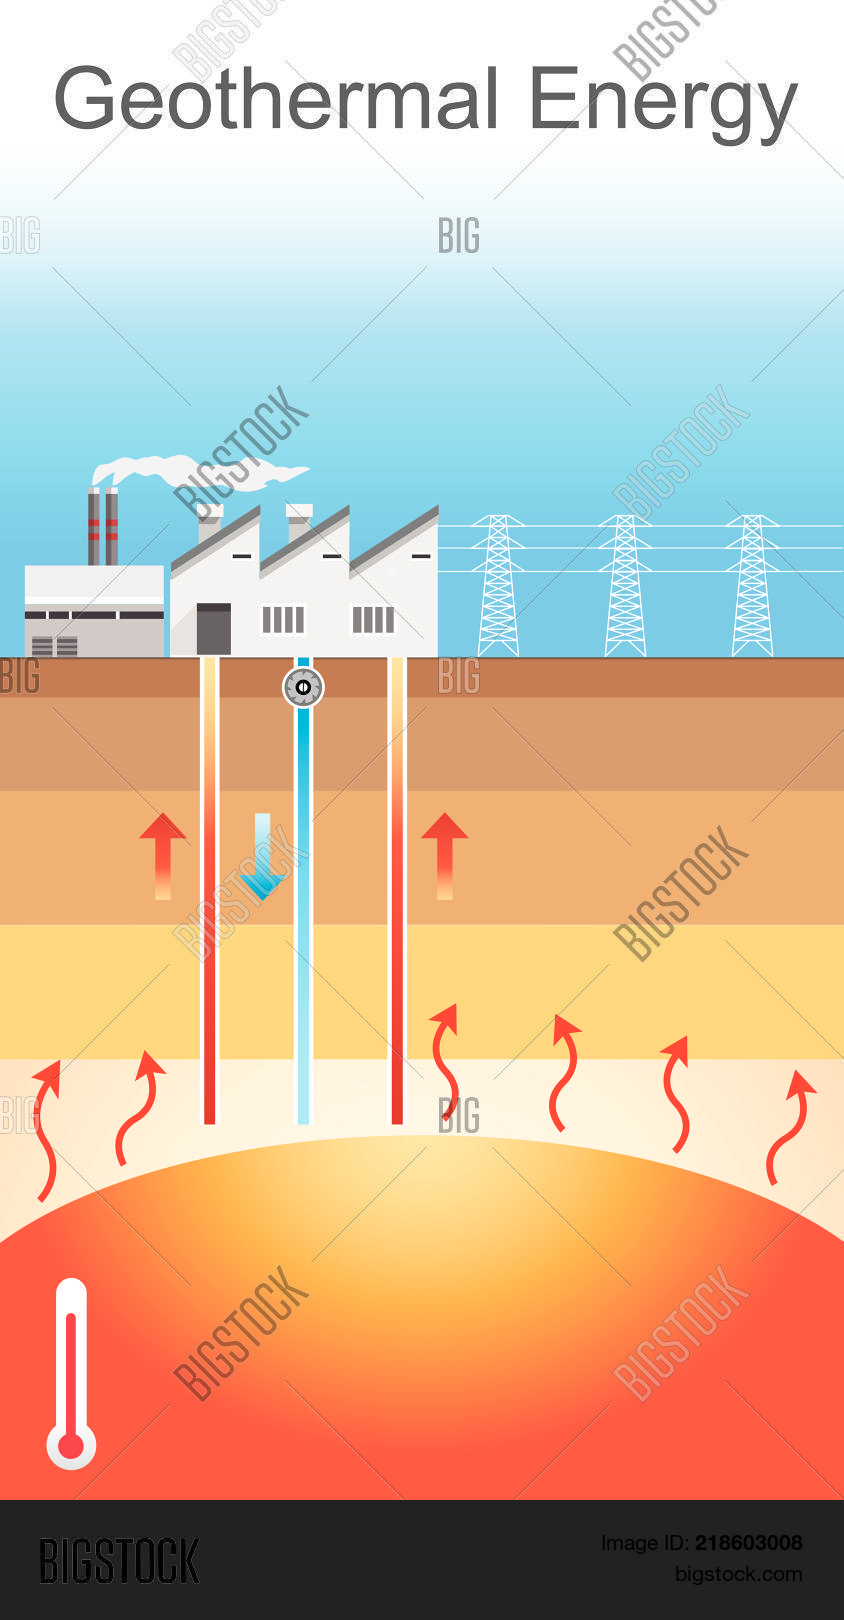 Geothermal energy thermal energy vector photo bigstock geothermal energy is thermal energy generated and stored in the earth thermal energy is the pooptronica